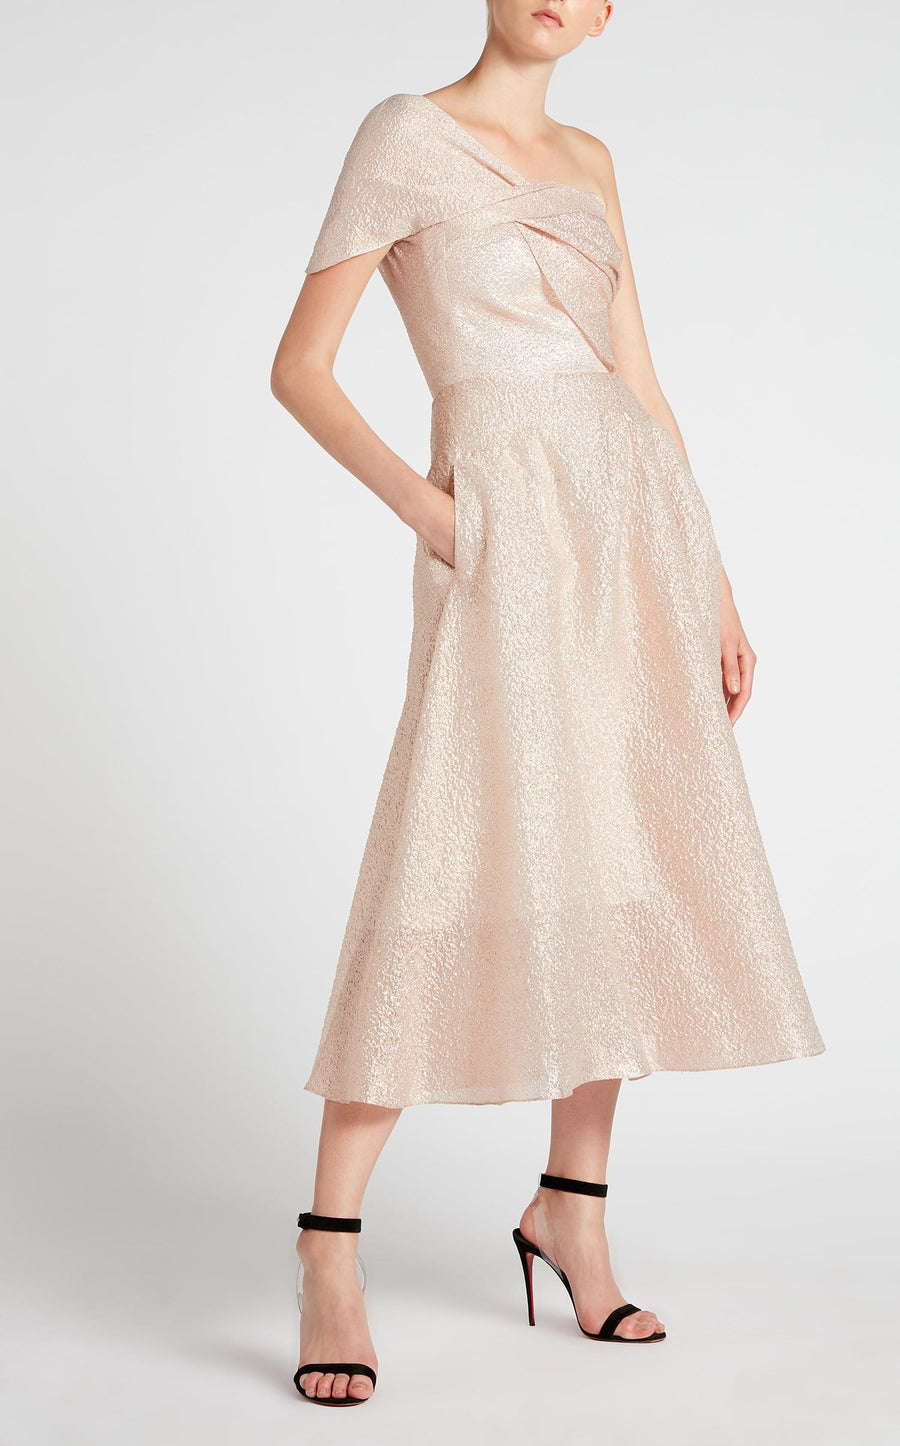 Norton Dress In Dark Blush from Roland Mouret